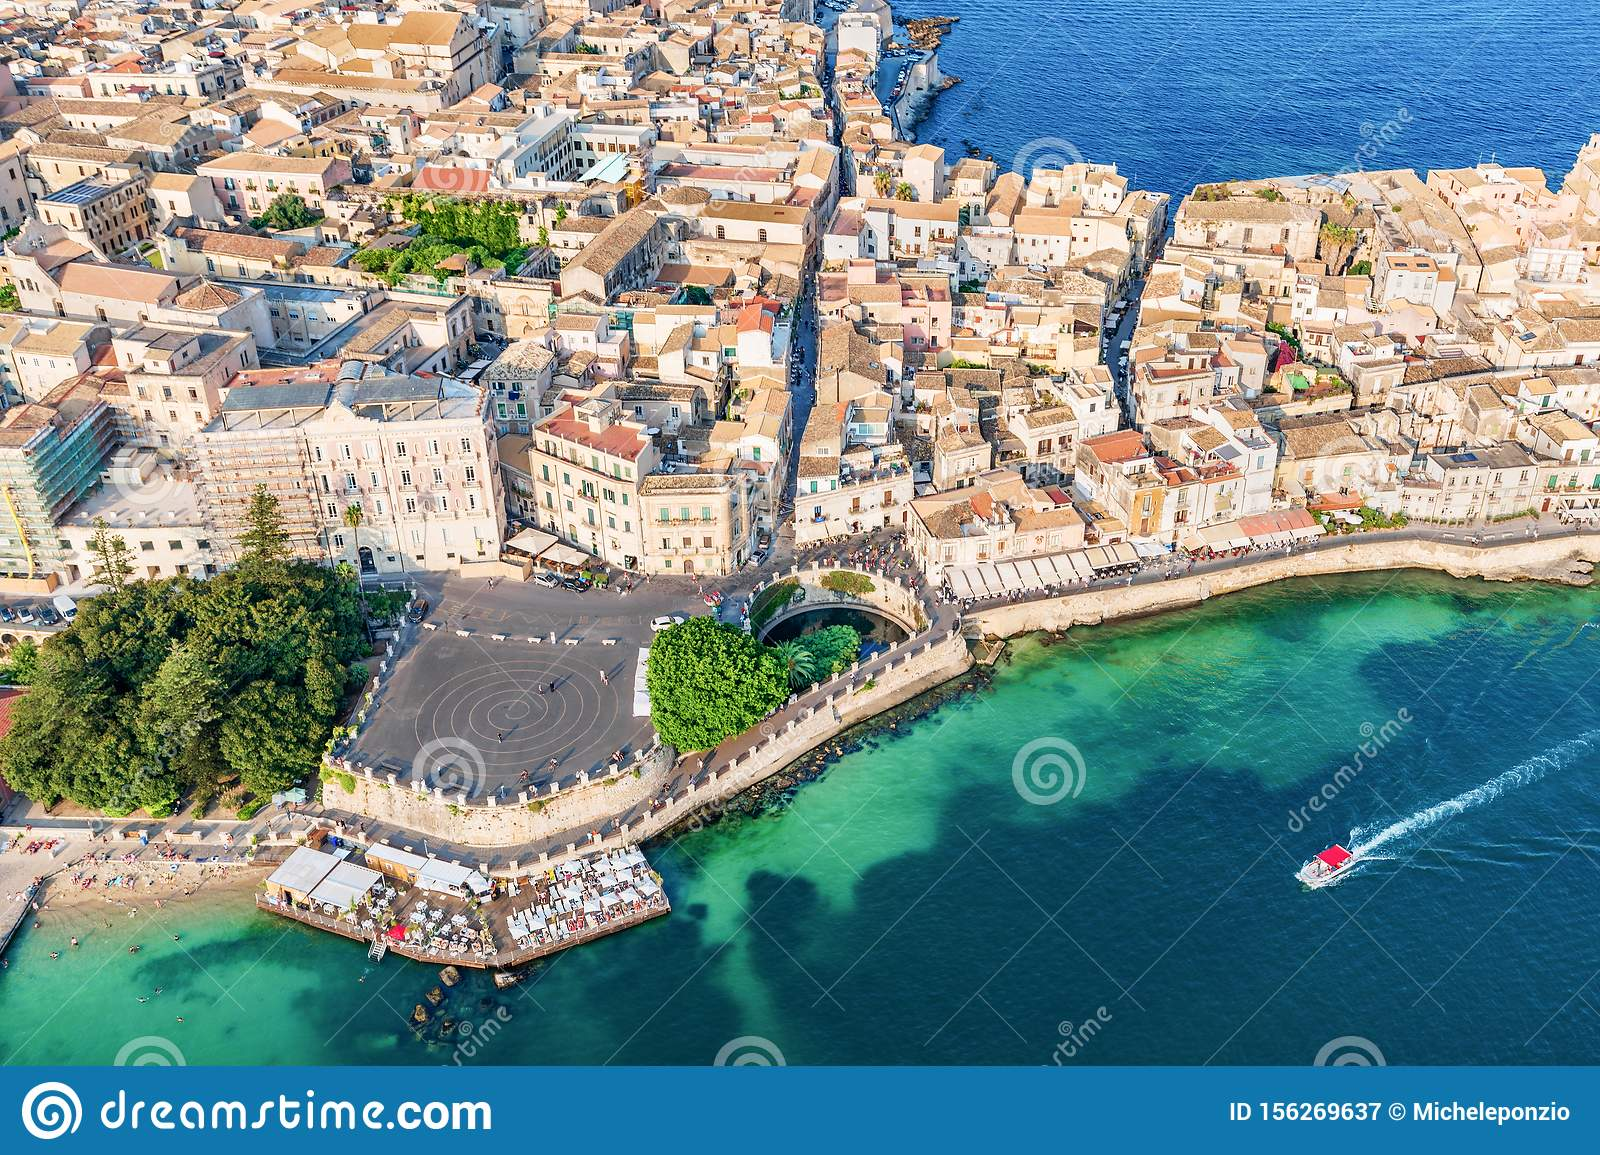 Aerial view of the Large square and source Arethusa in Ortigia, Syracuse Sicily